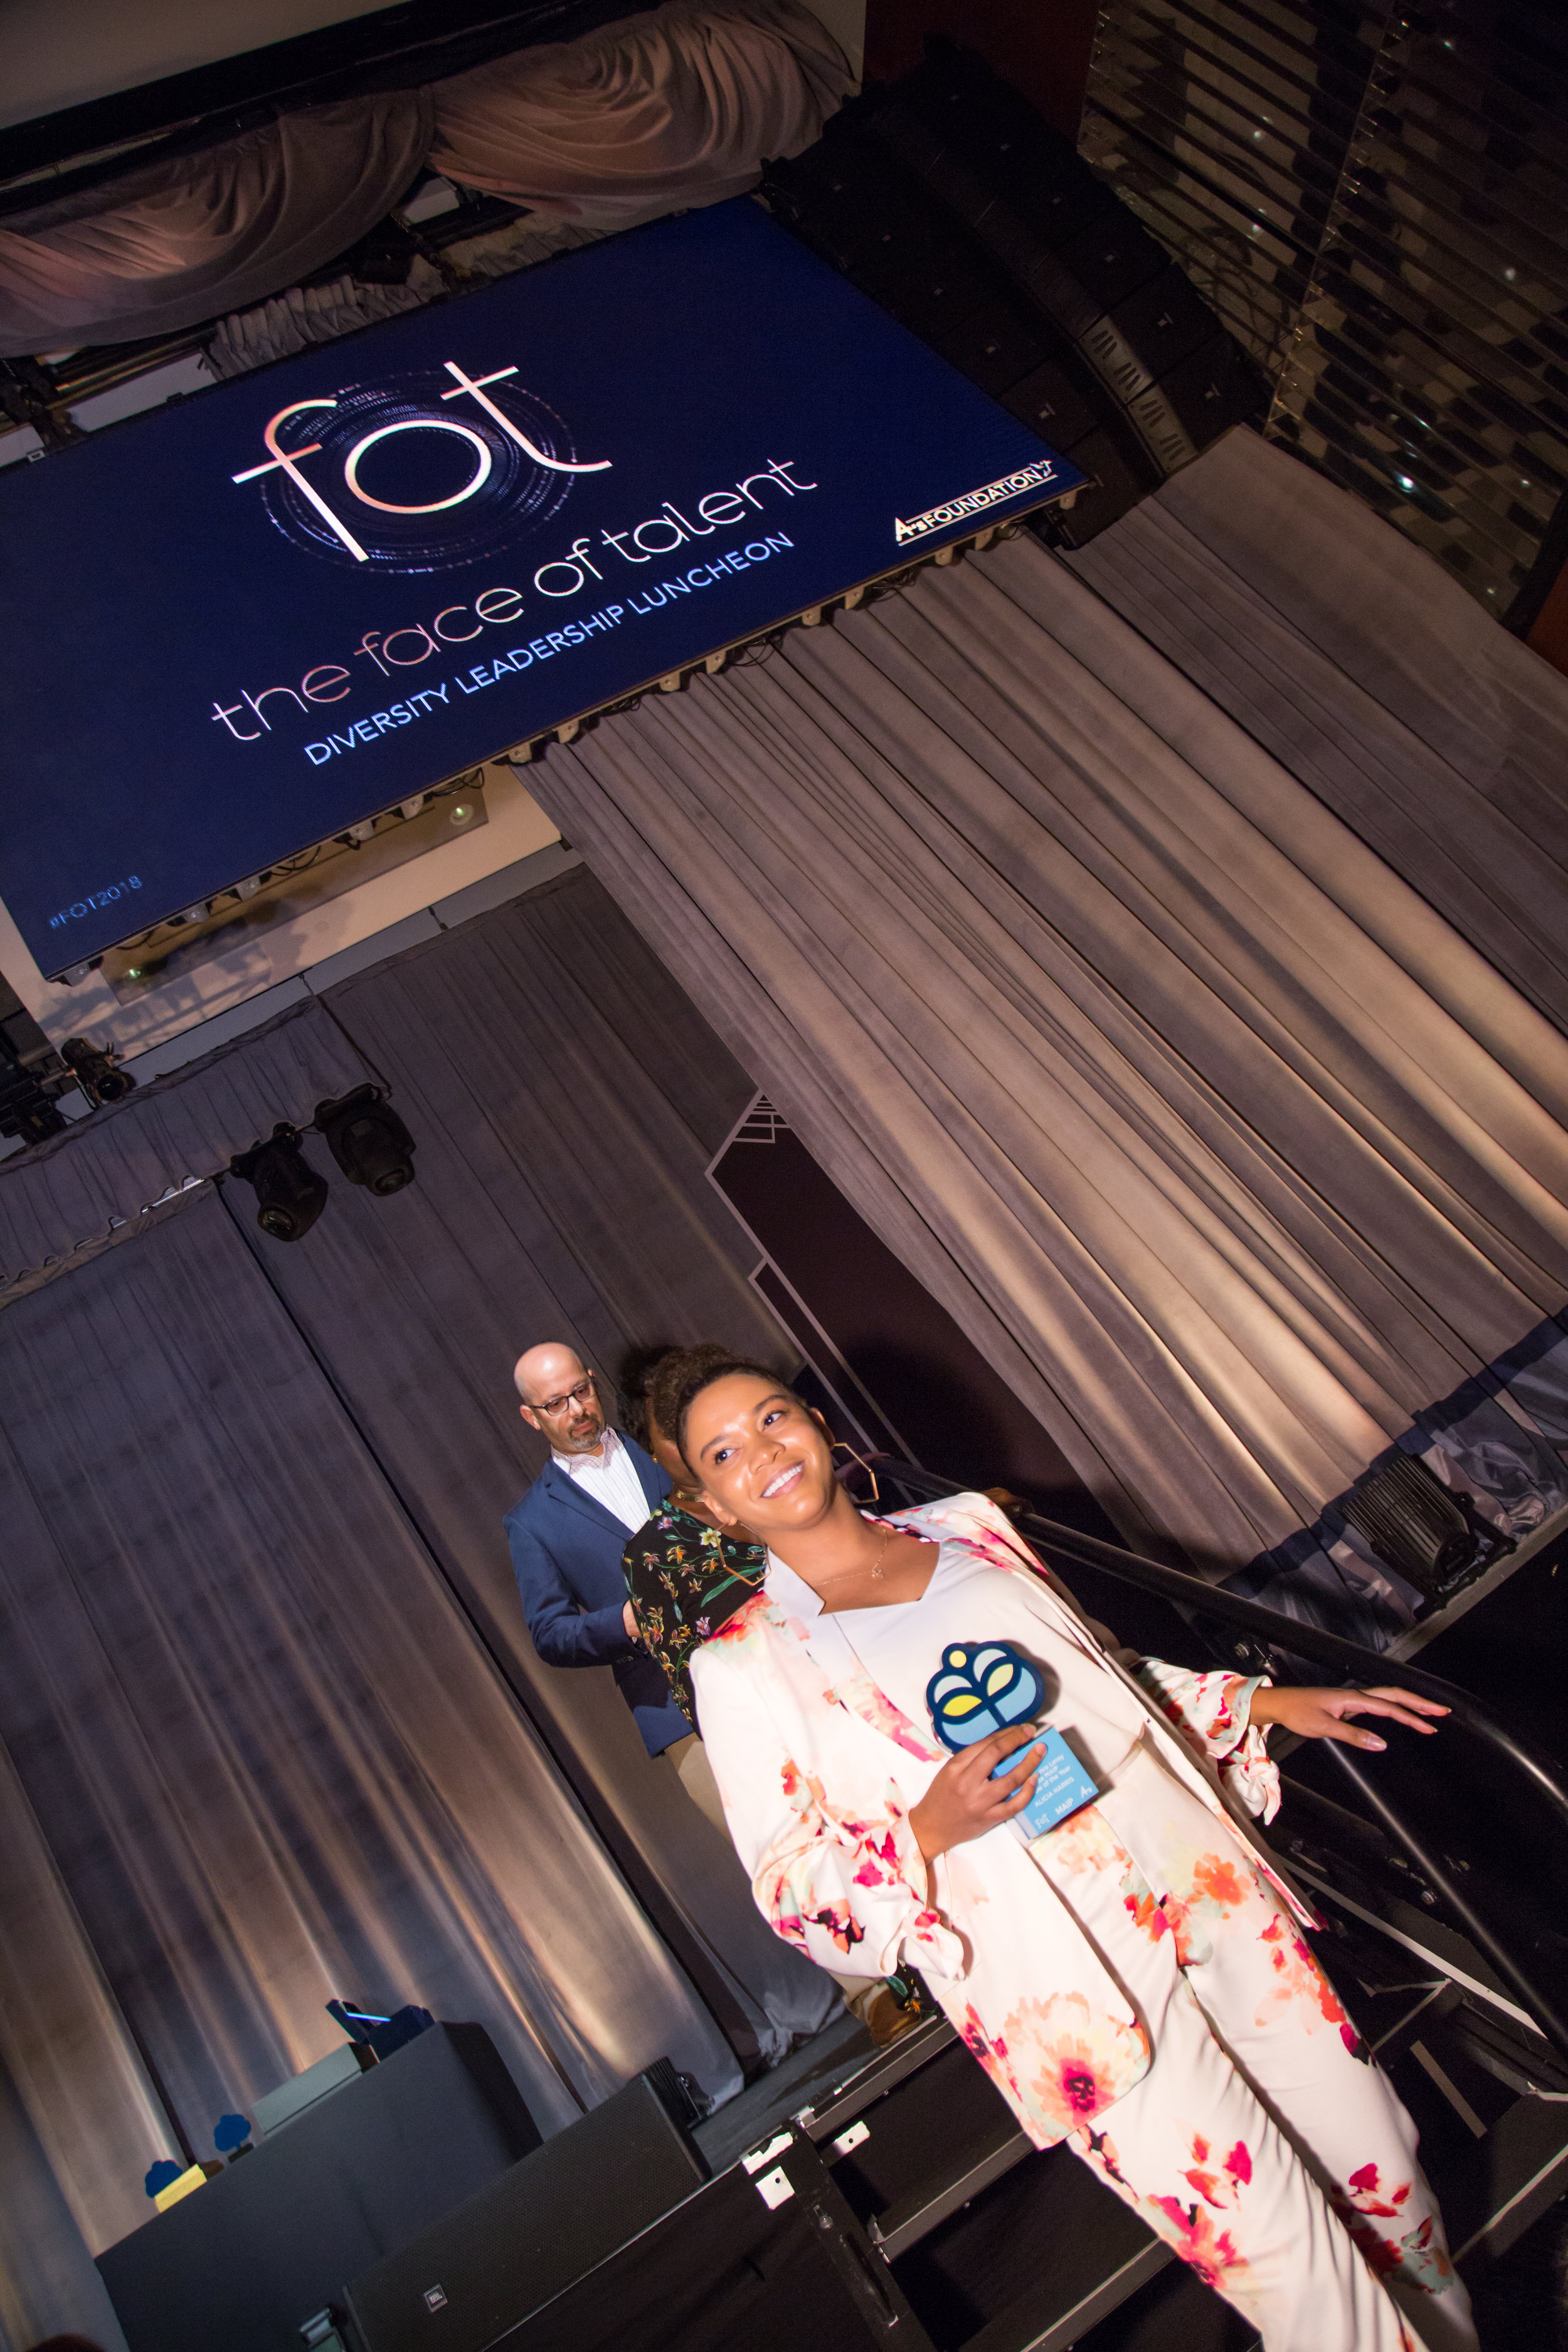 4As_MAIP_FOT_Luncheon_2018_Margarita_Corporan-159.jpg